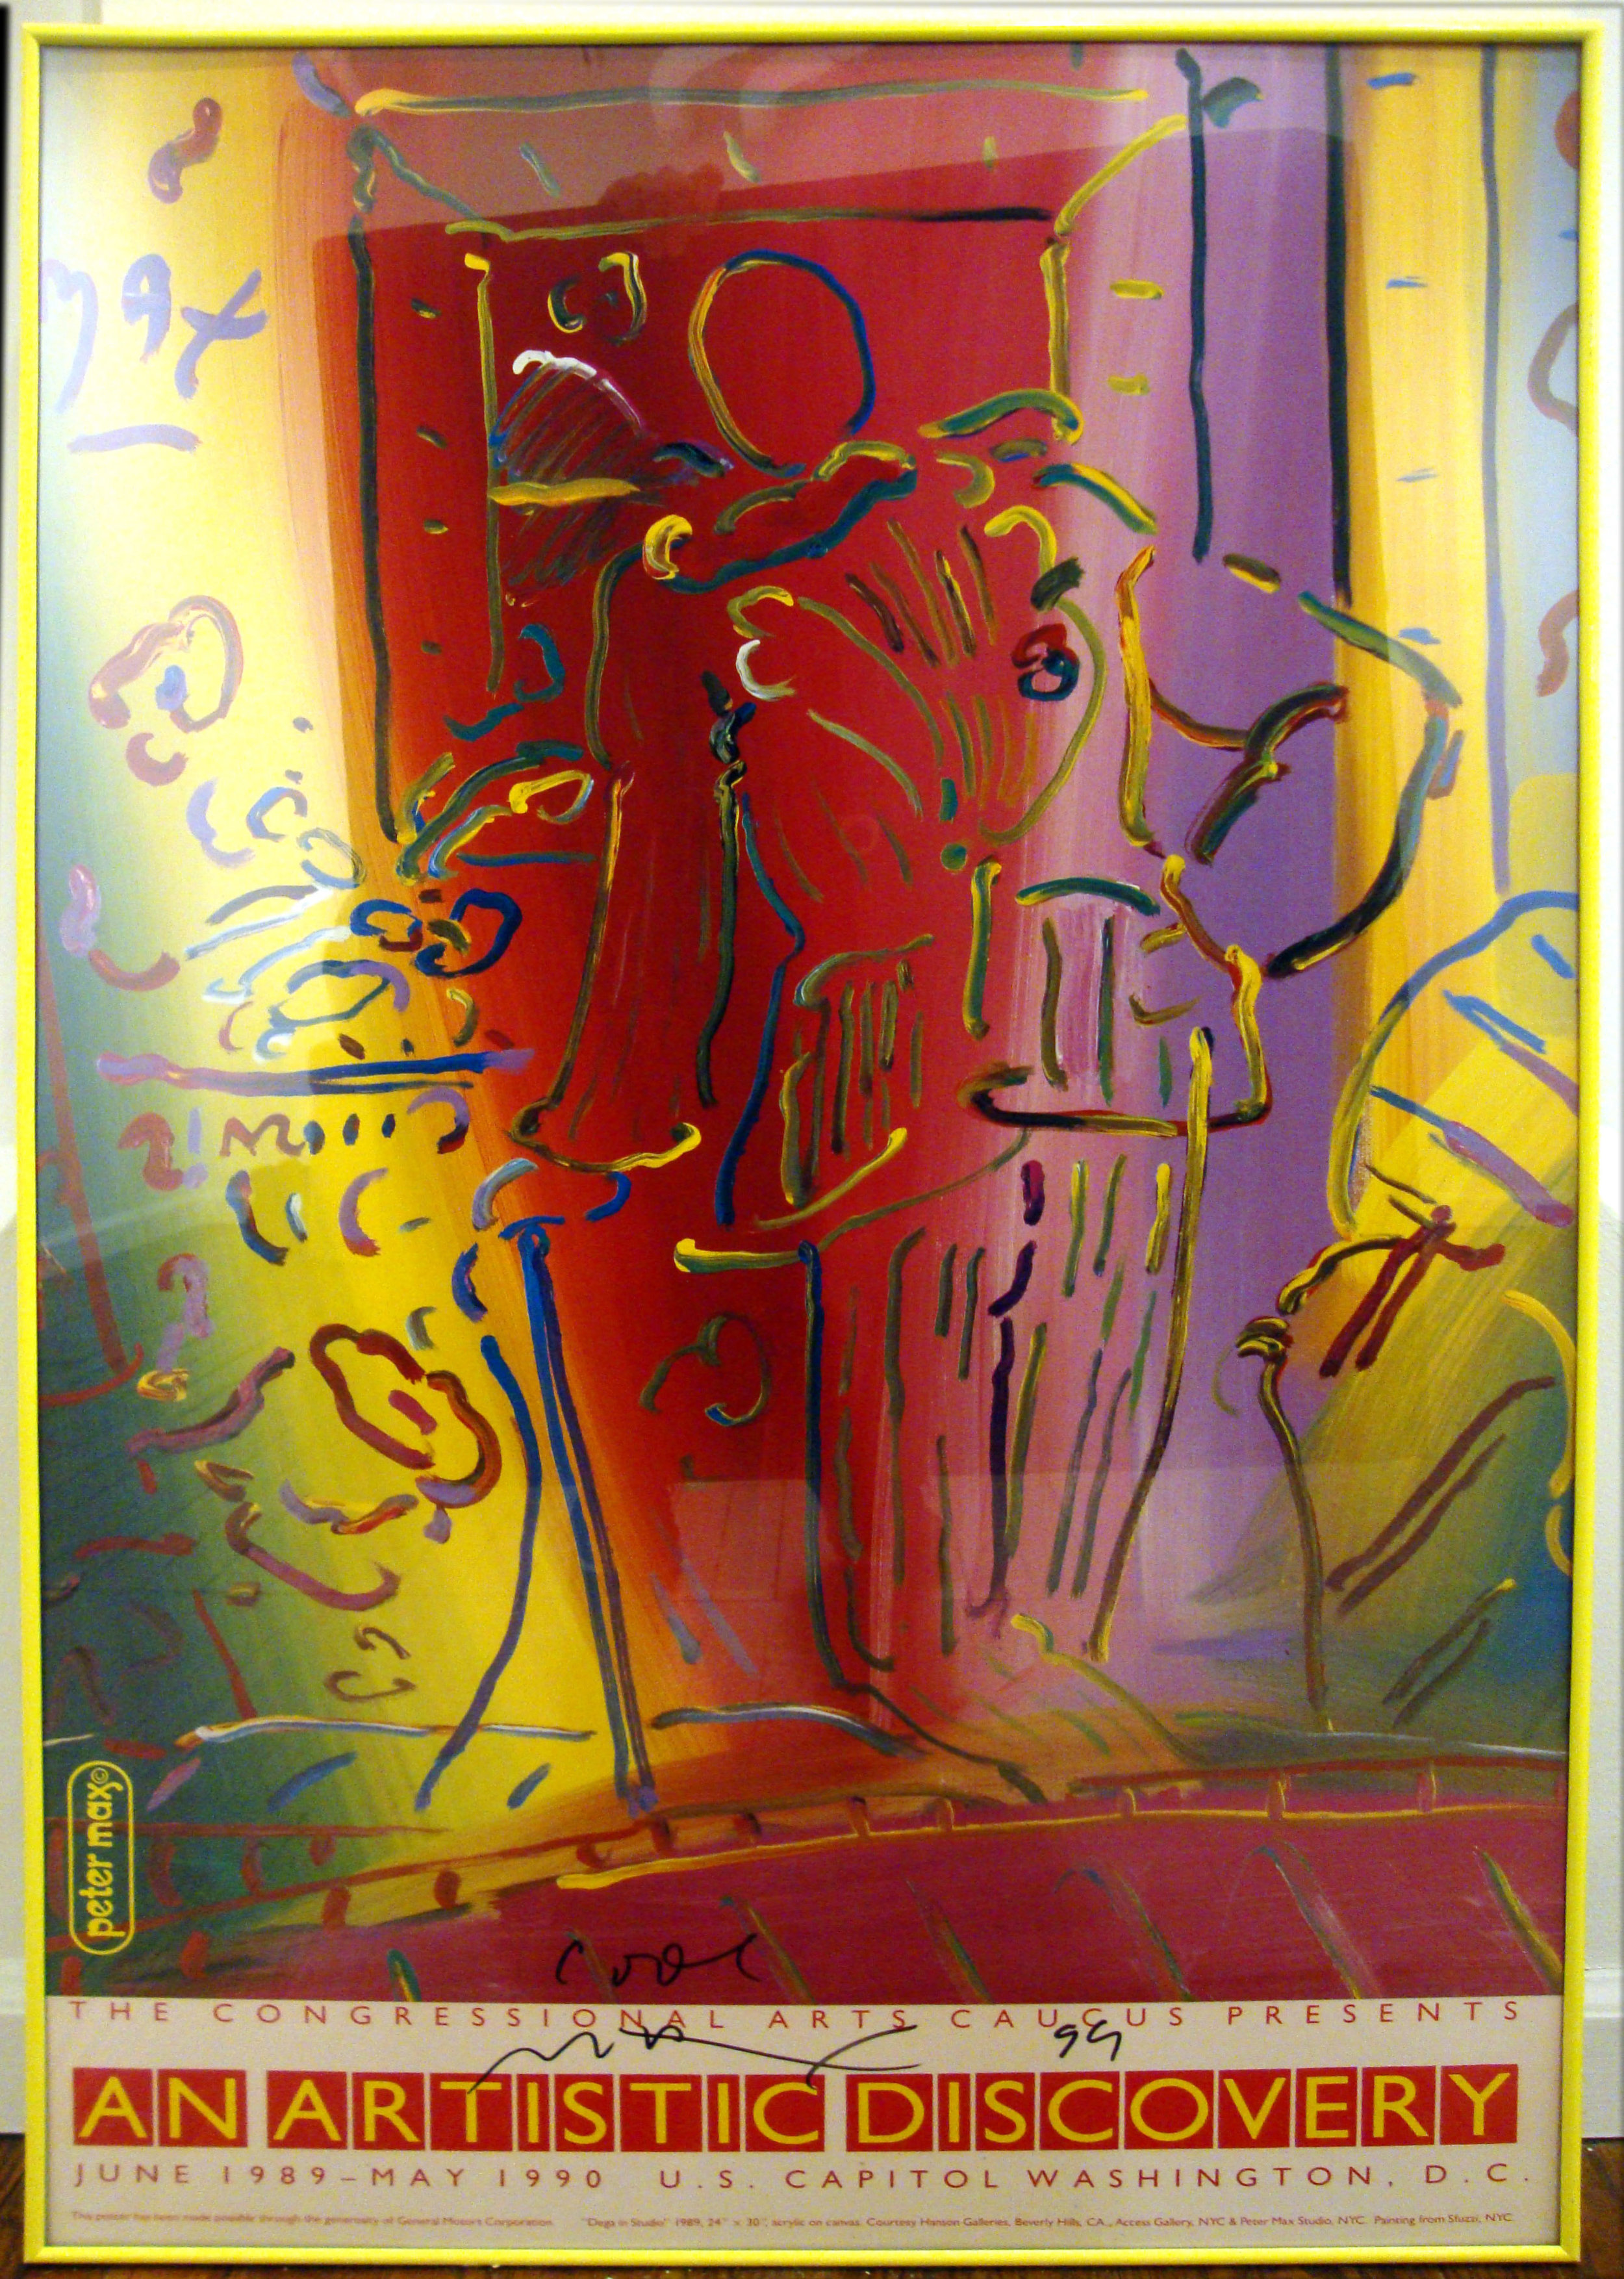 Peter Max, Dega in Studio, 1989, Poster, 36 x 24, signed and dated, promotion for congressional art competition.JPG